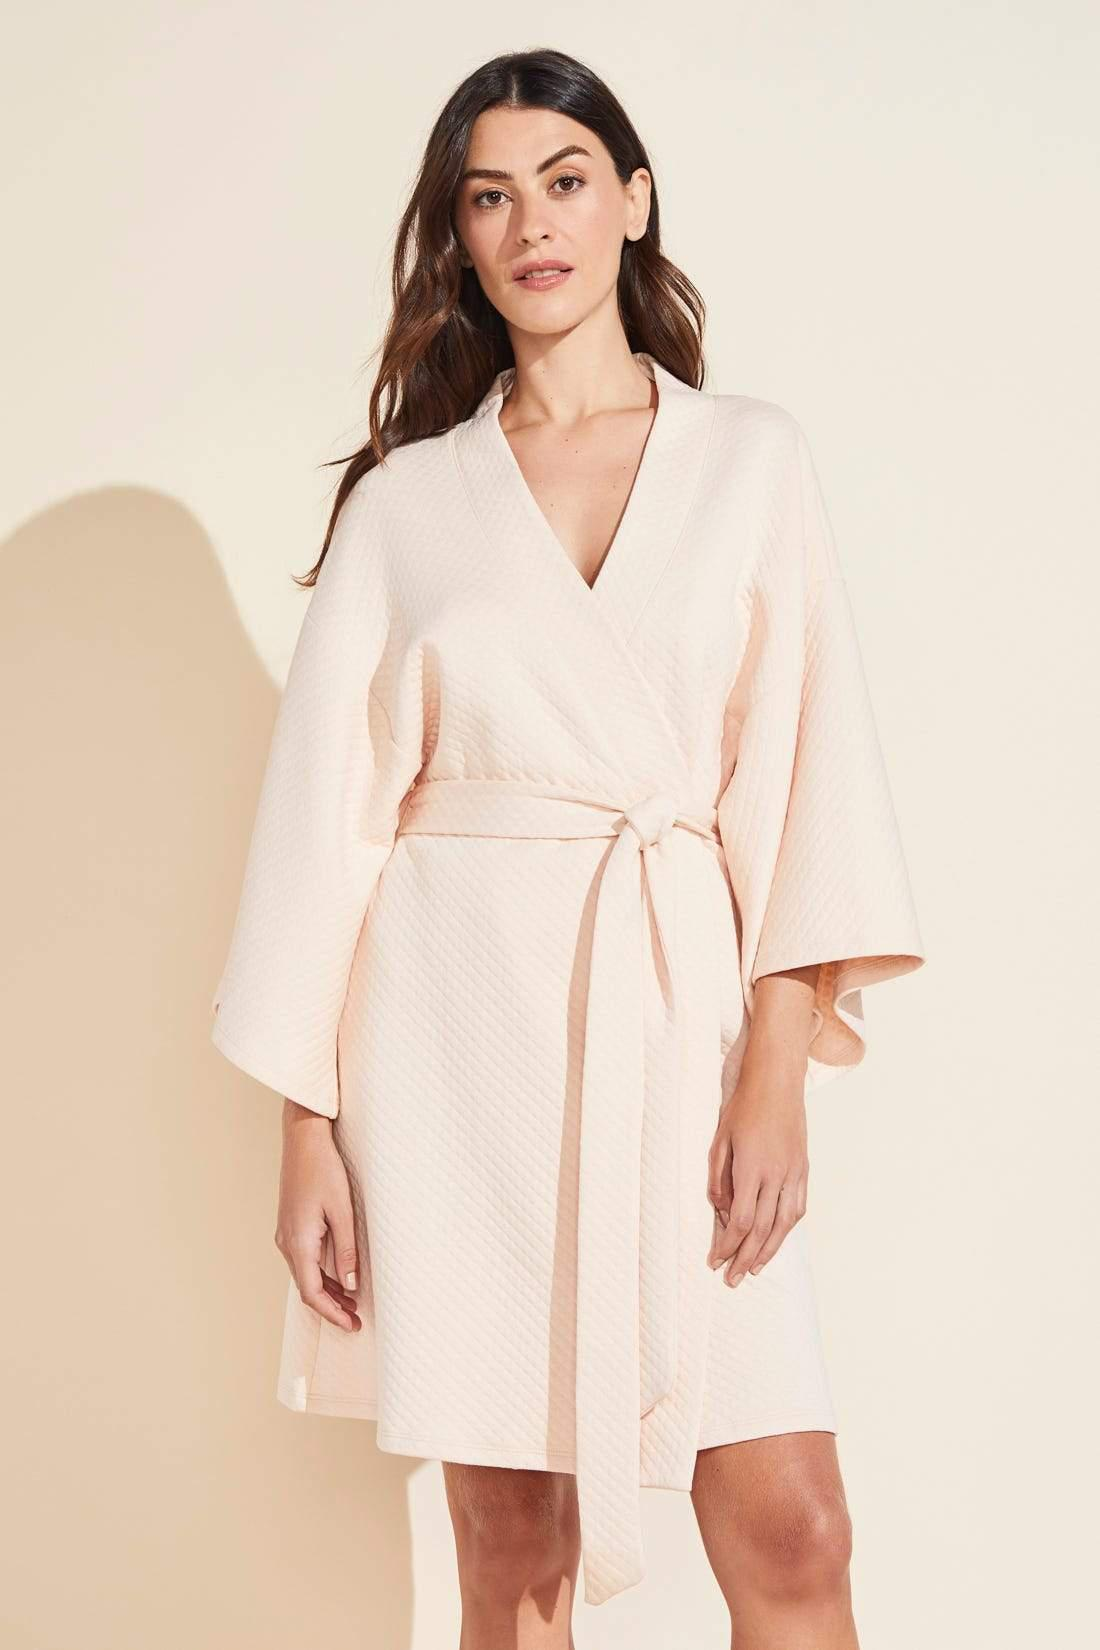 Zen Quilted Cotton Spa Robe - Shell